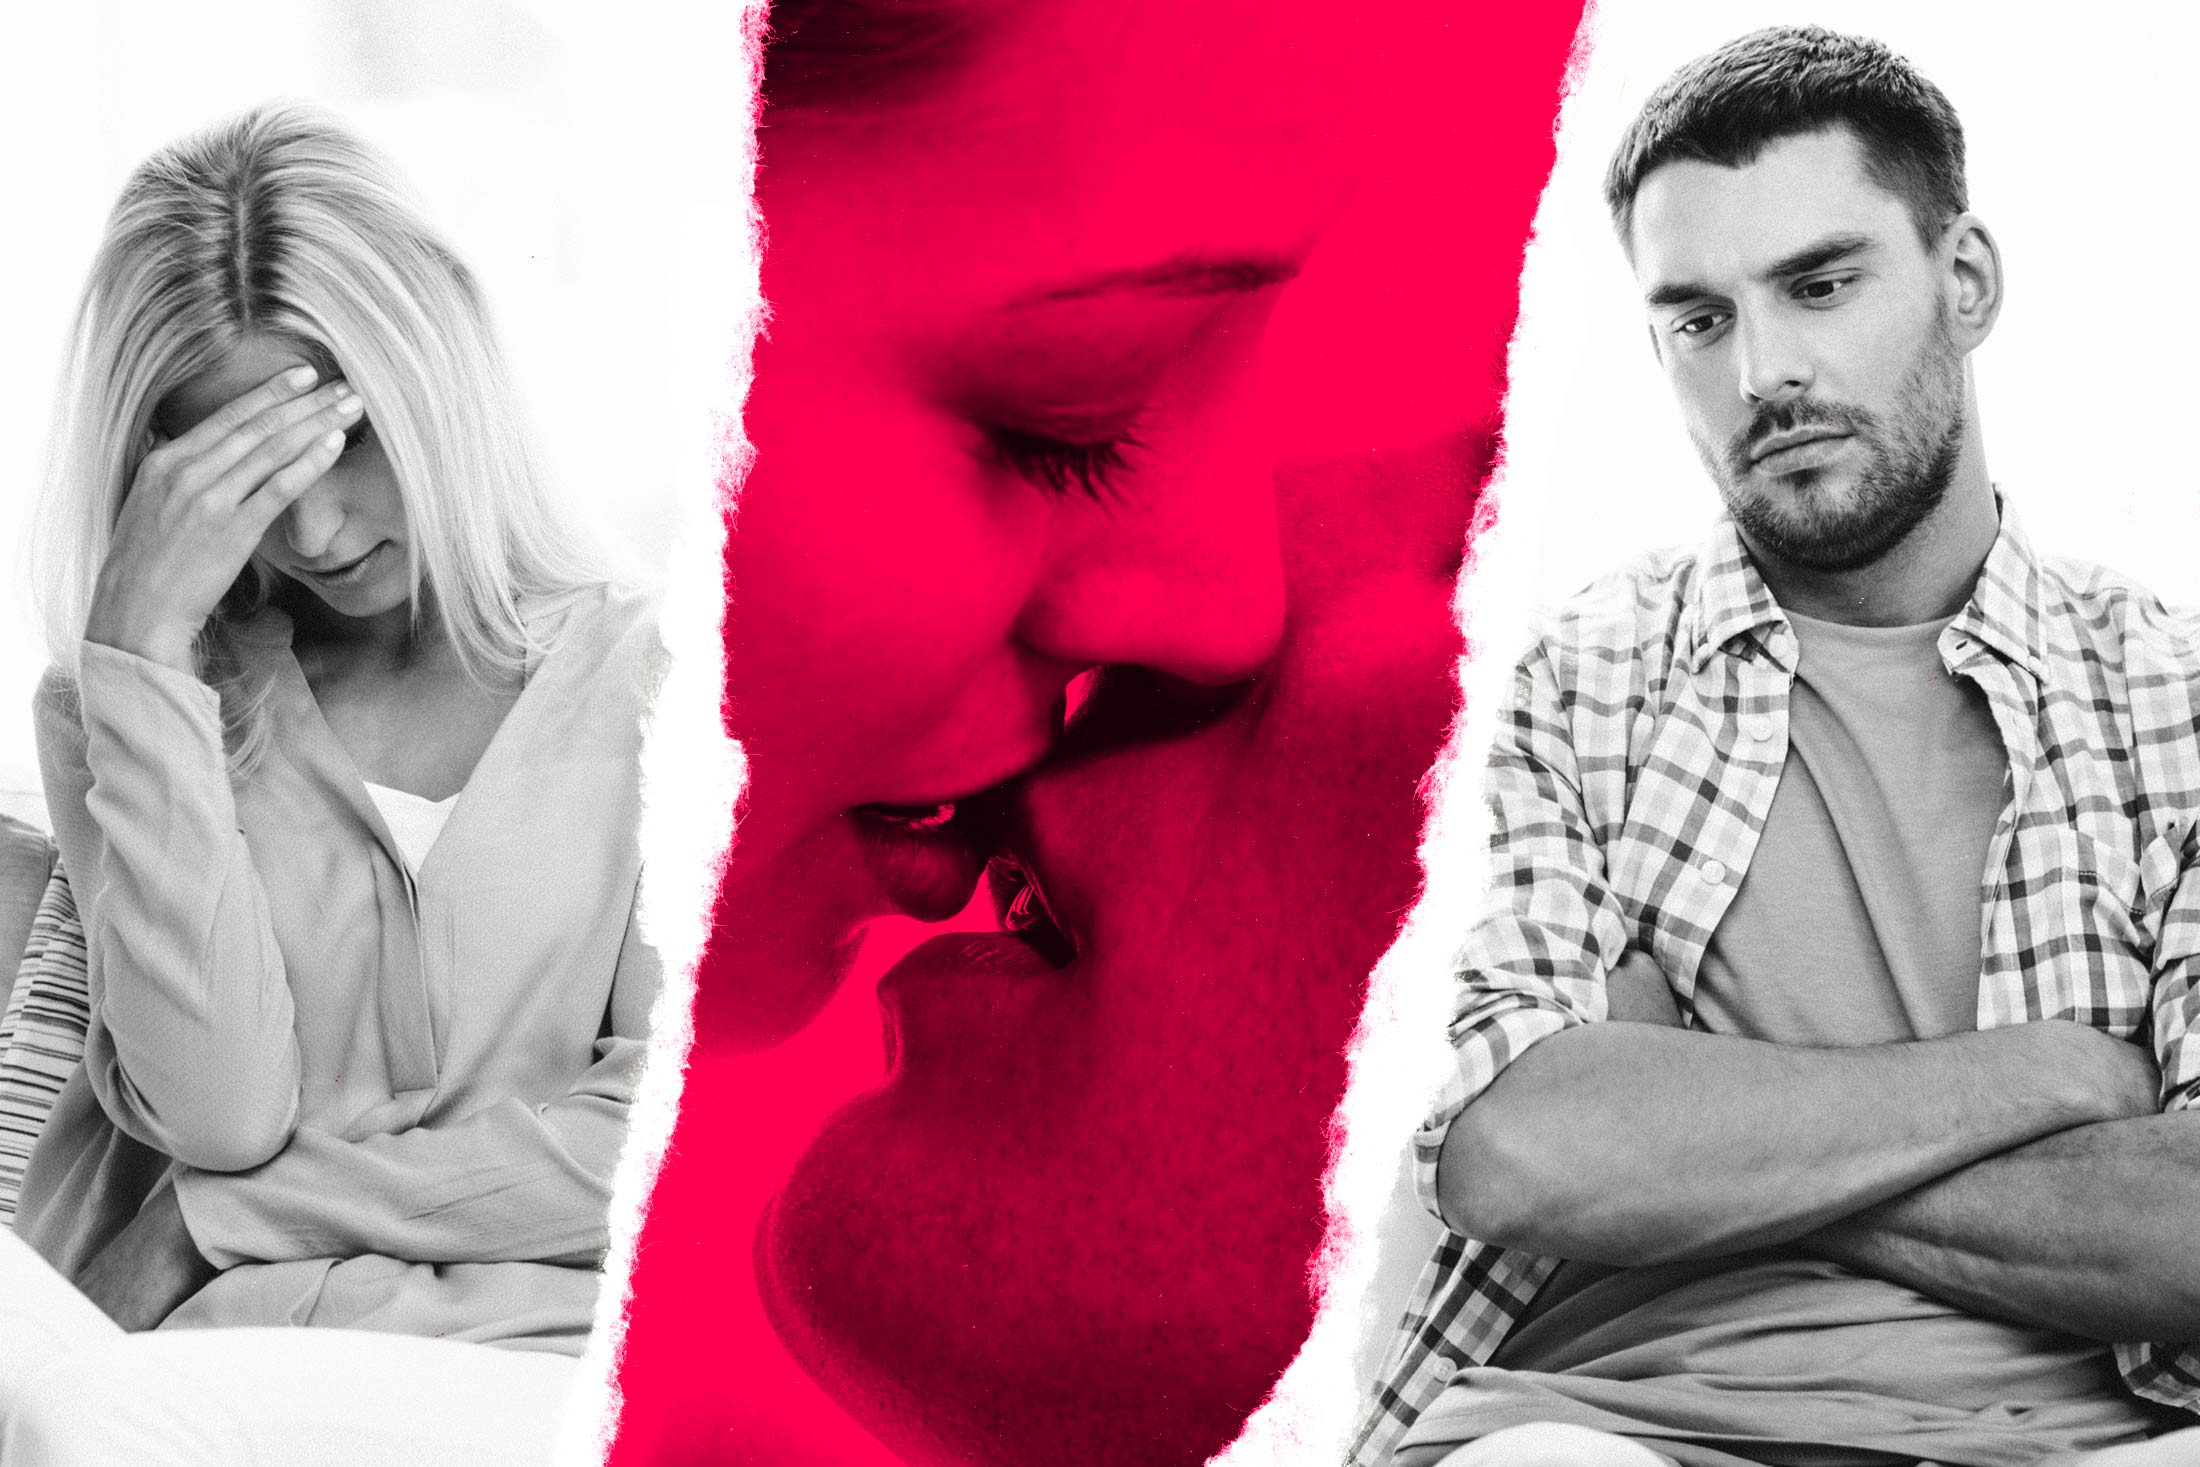 Photo illustration: In a paper-torn–like image, a woman holds her head with one hand on the left while a guy sits with crossed arms and visible frustration on the right. In the center is a close-up of a kissing couple.